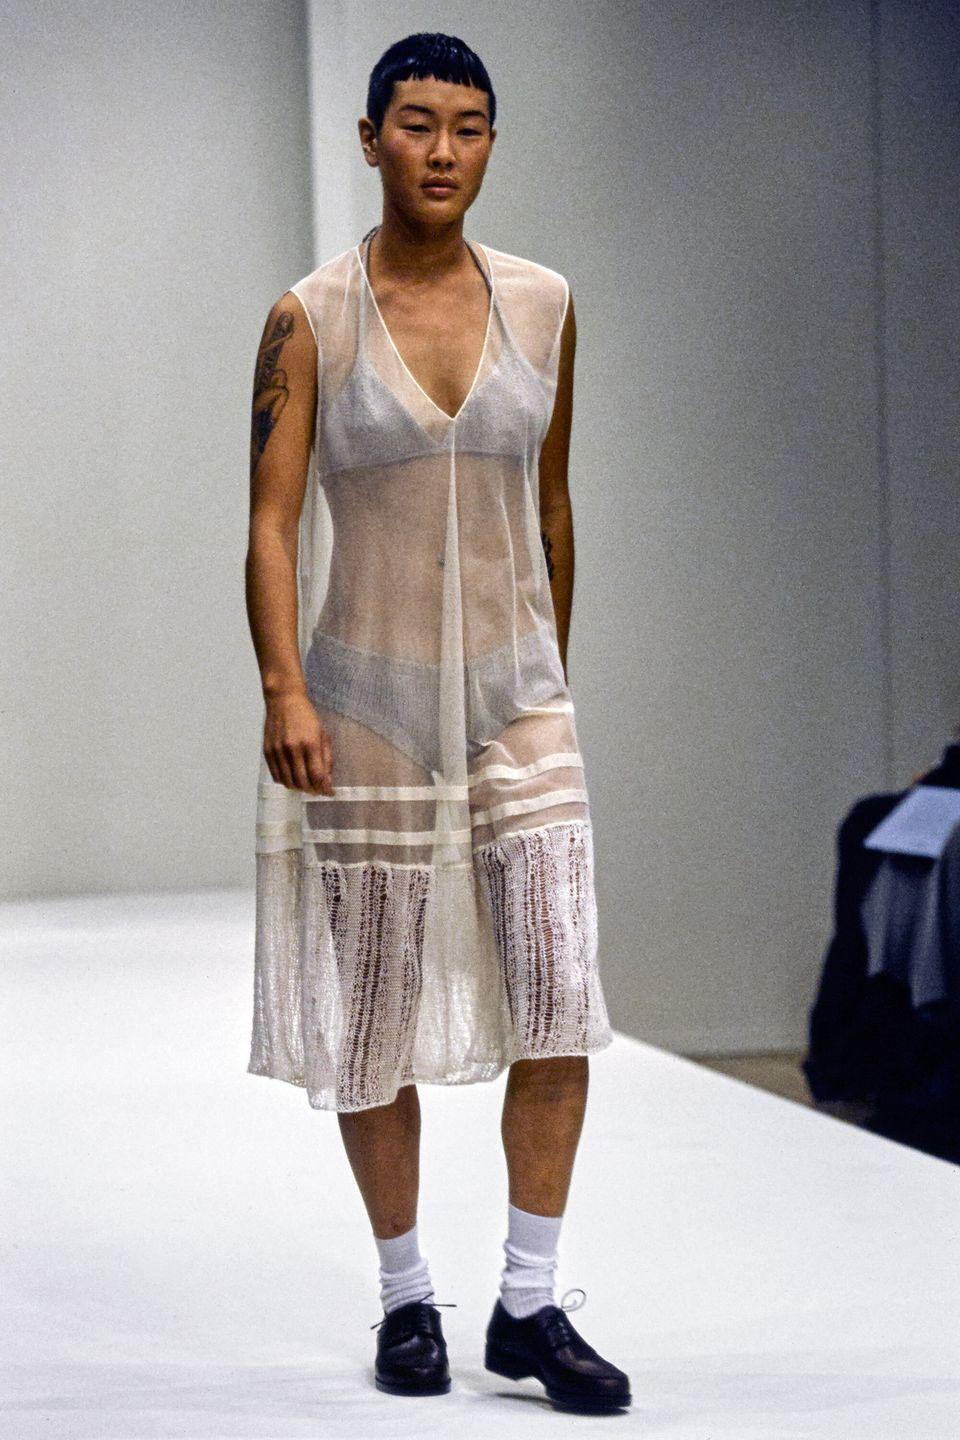 """<p>Asian, five foot seven, and an out and proud lesbian, Jenny Shimizu didn't fit into any prescribed box. Still, the California native persevered in the fashion industry, becoming the first Asian model to walk down a major runway (Prada) and star in campaigns for Calvin Klein, Hourglass Cosmetics, and Banana Republic. She's also appeared in a film alongside Angelina Jolie (whom she <a href=""""https://heavy.com/news/2016/09/angelina-jolie-lesbian-lover-girlfriend-jenny-shimizu-divorce-brad-pitt/"""" rel=""""nofollow noopener"""" target=""""_blank"""" data-ylk=""""slk:reportedly"""" class=""""link rapid-noclick-resp"""">reportedly</a> dated) and was a judge on <em>Make Me a Supermodel</em>. </p>"""